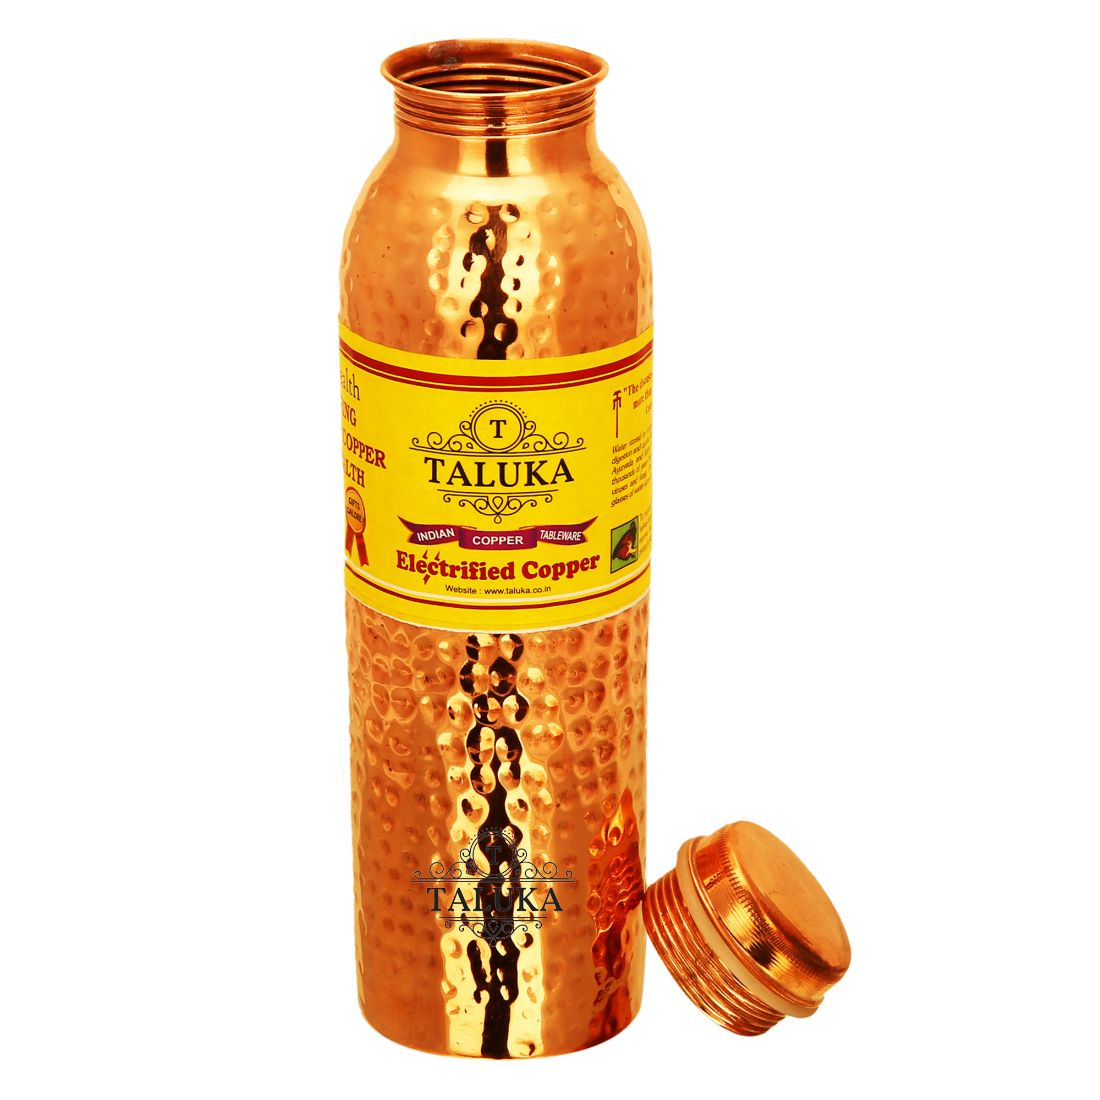 Copper Hammered Leak Proof Joint Free Water Bottle 1000 ML 1 PC, 1 PC Copper Jug with Brass Handle 2000 ML- Storage water